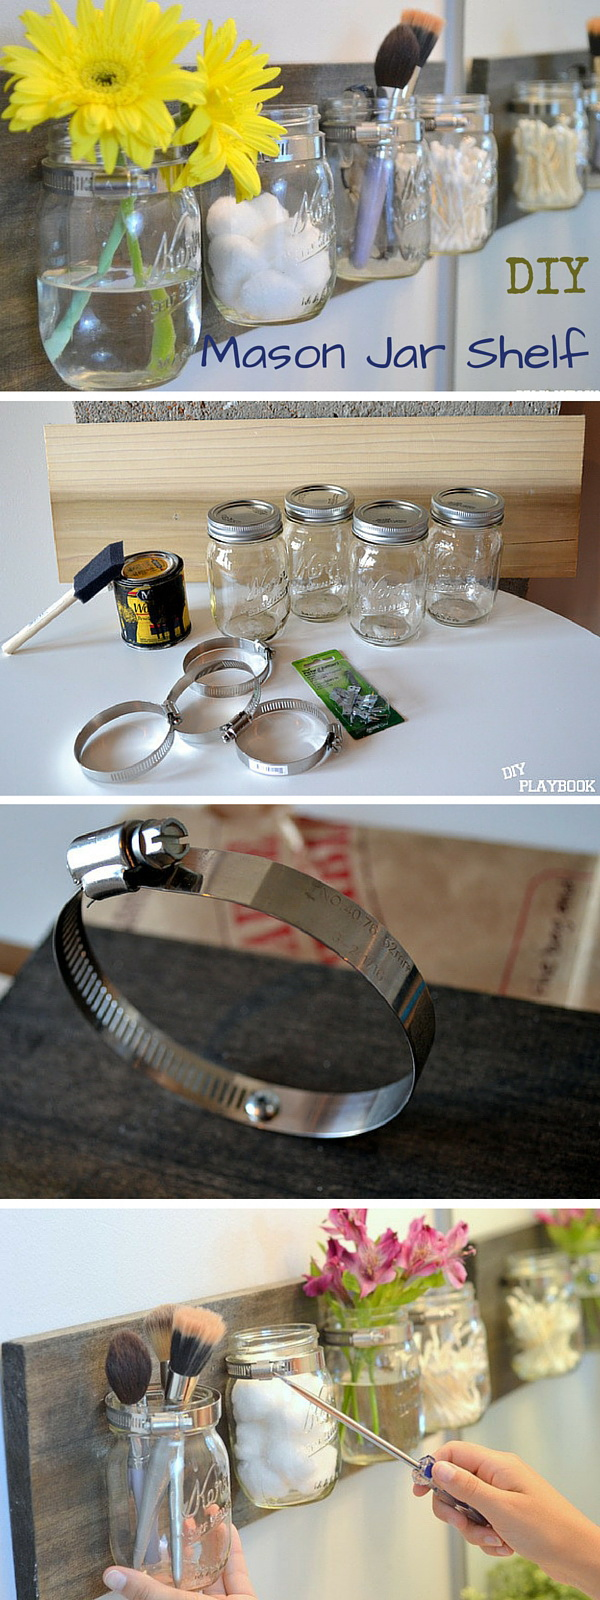 Mason Jar Shelf Bathroom Organizer.